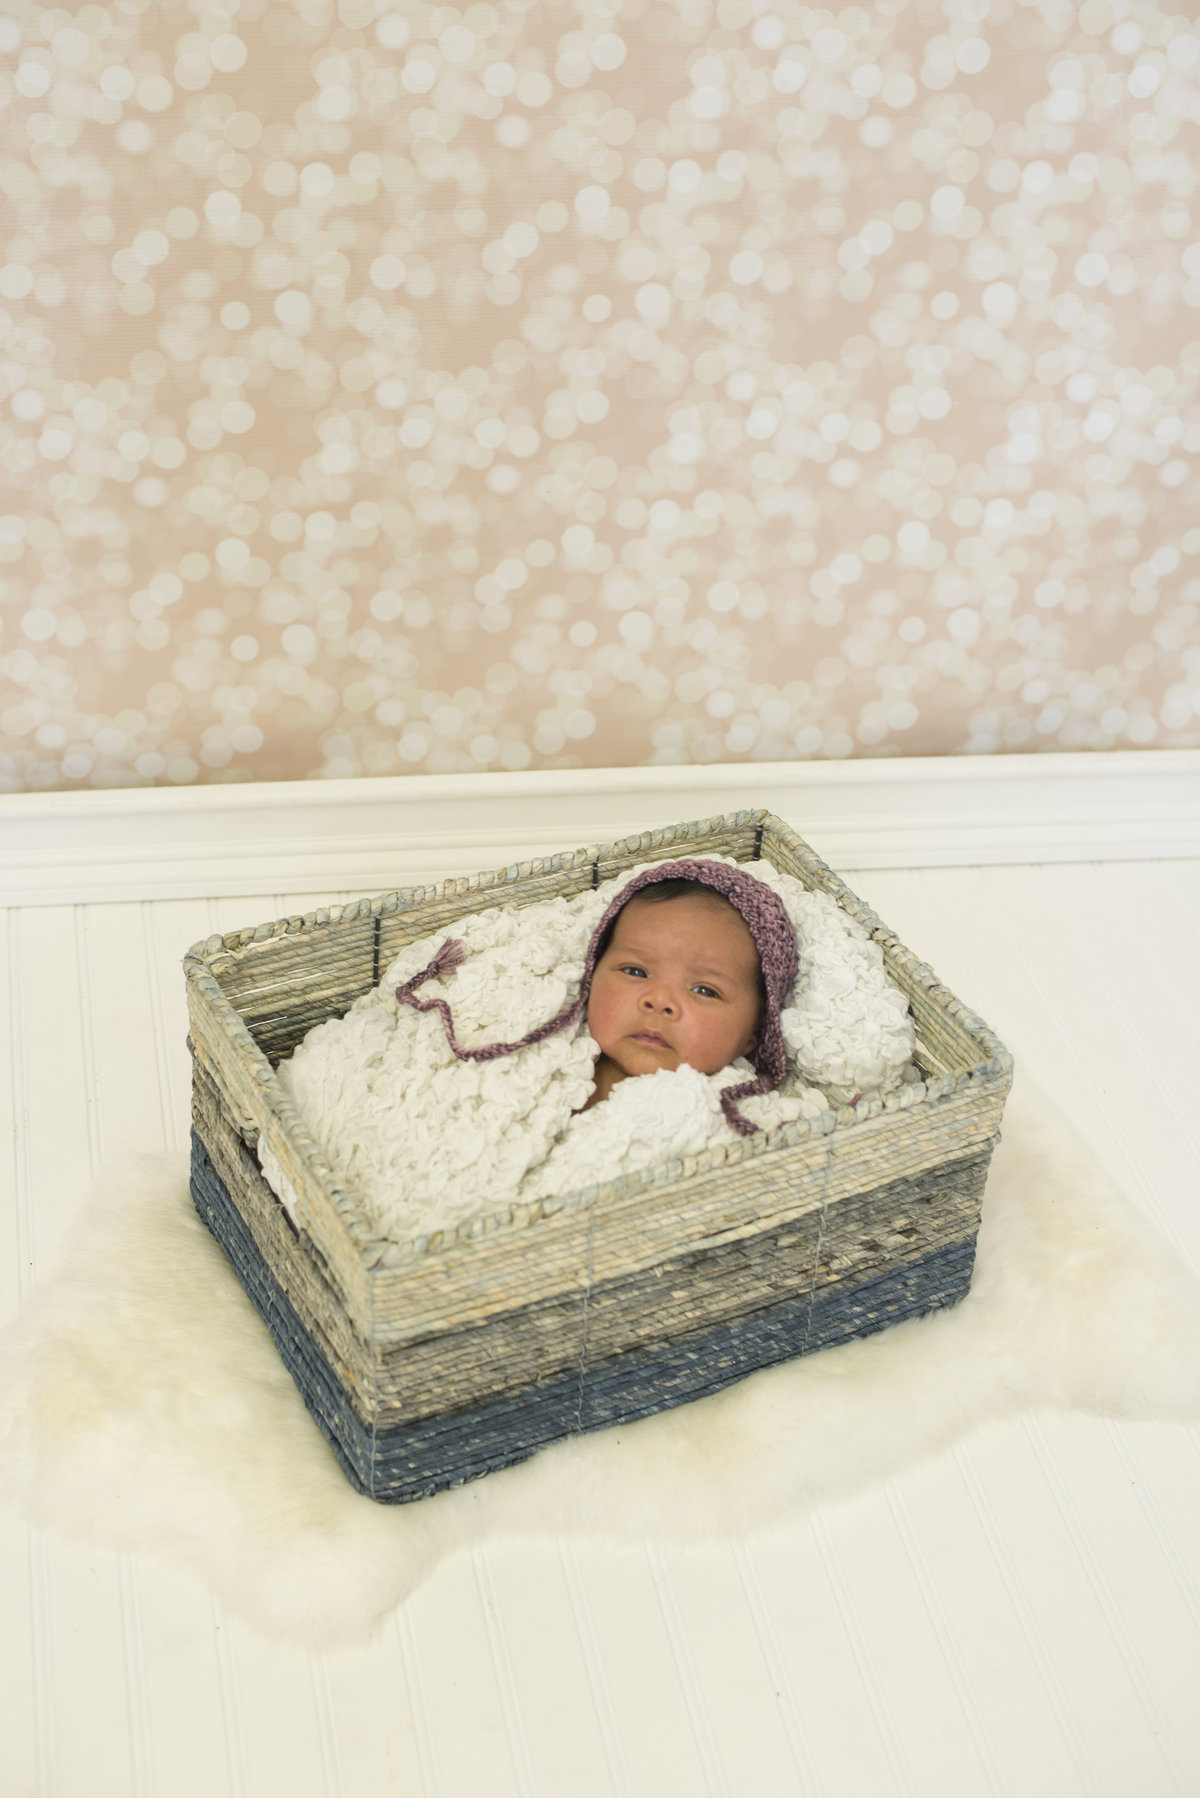 Malika's Newborn Photos  3-30-17 -- Bright Lights Imagery (33 of 58)